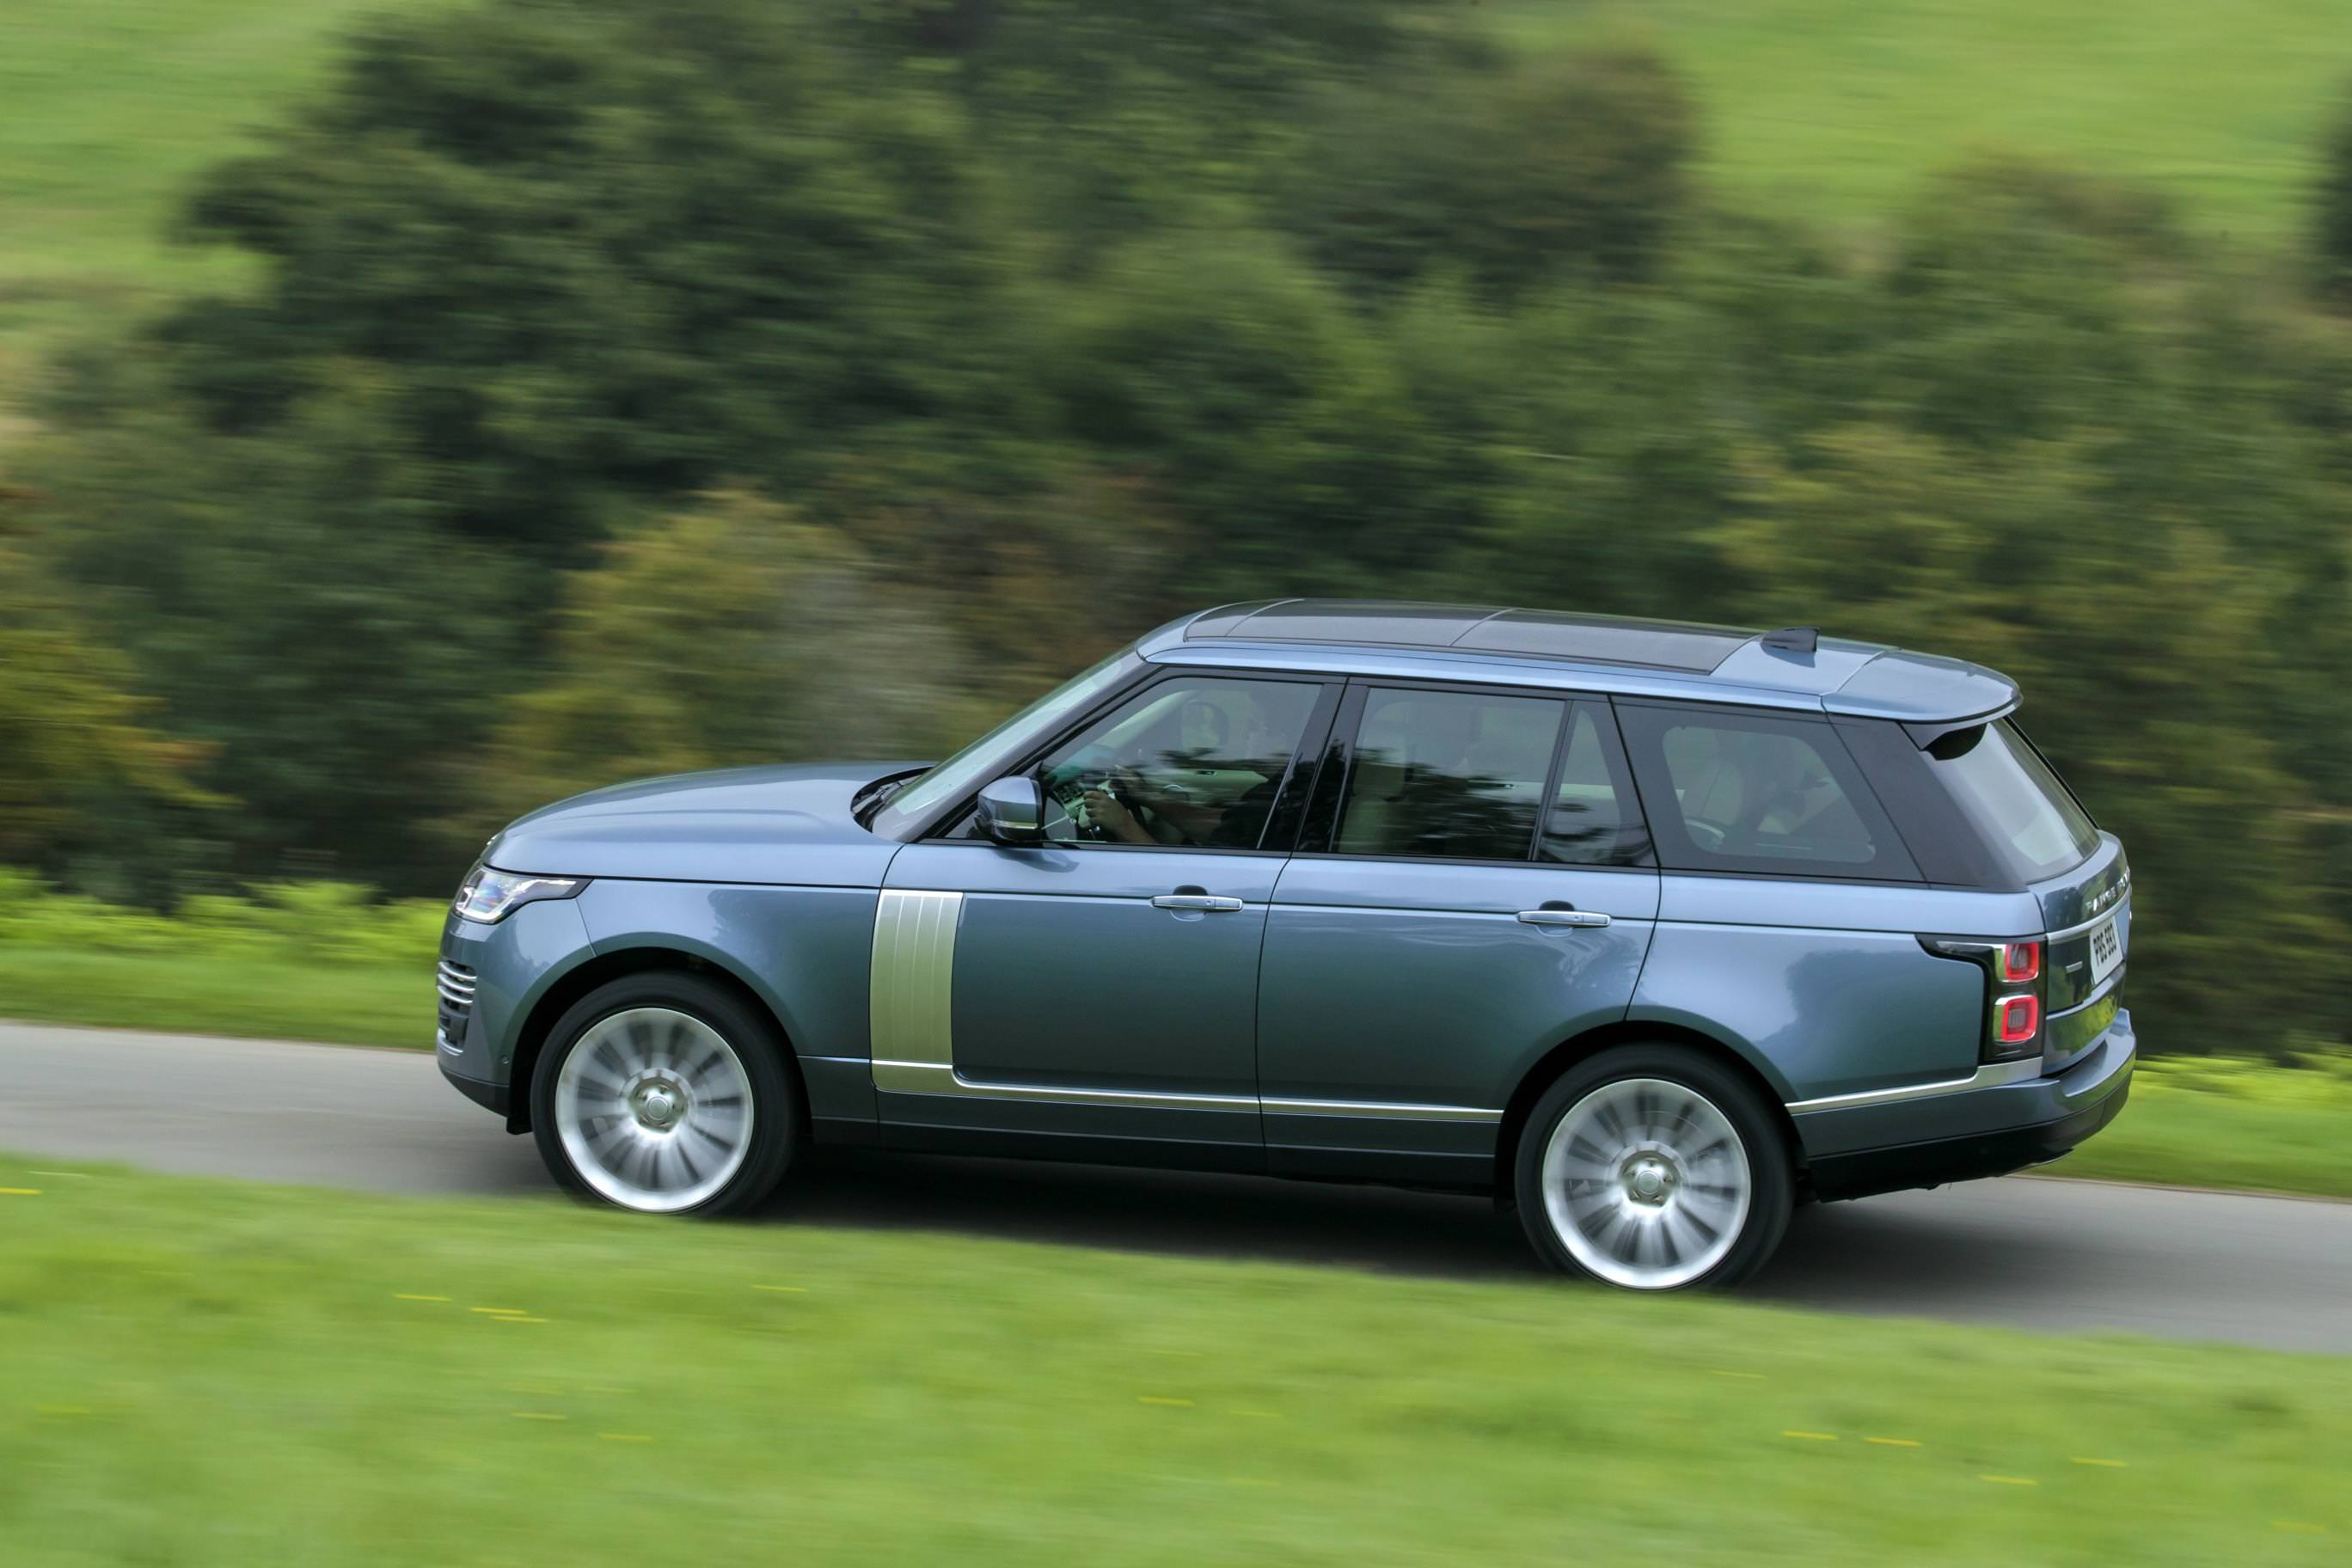 image of a grey land rover car exterior